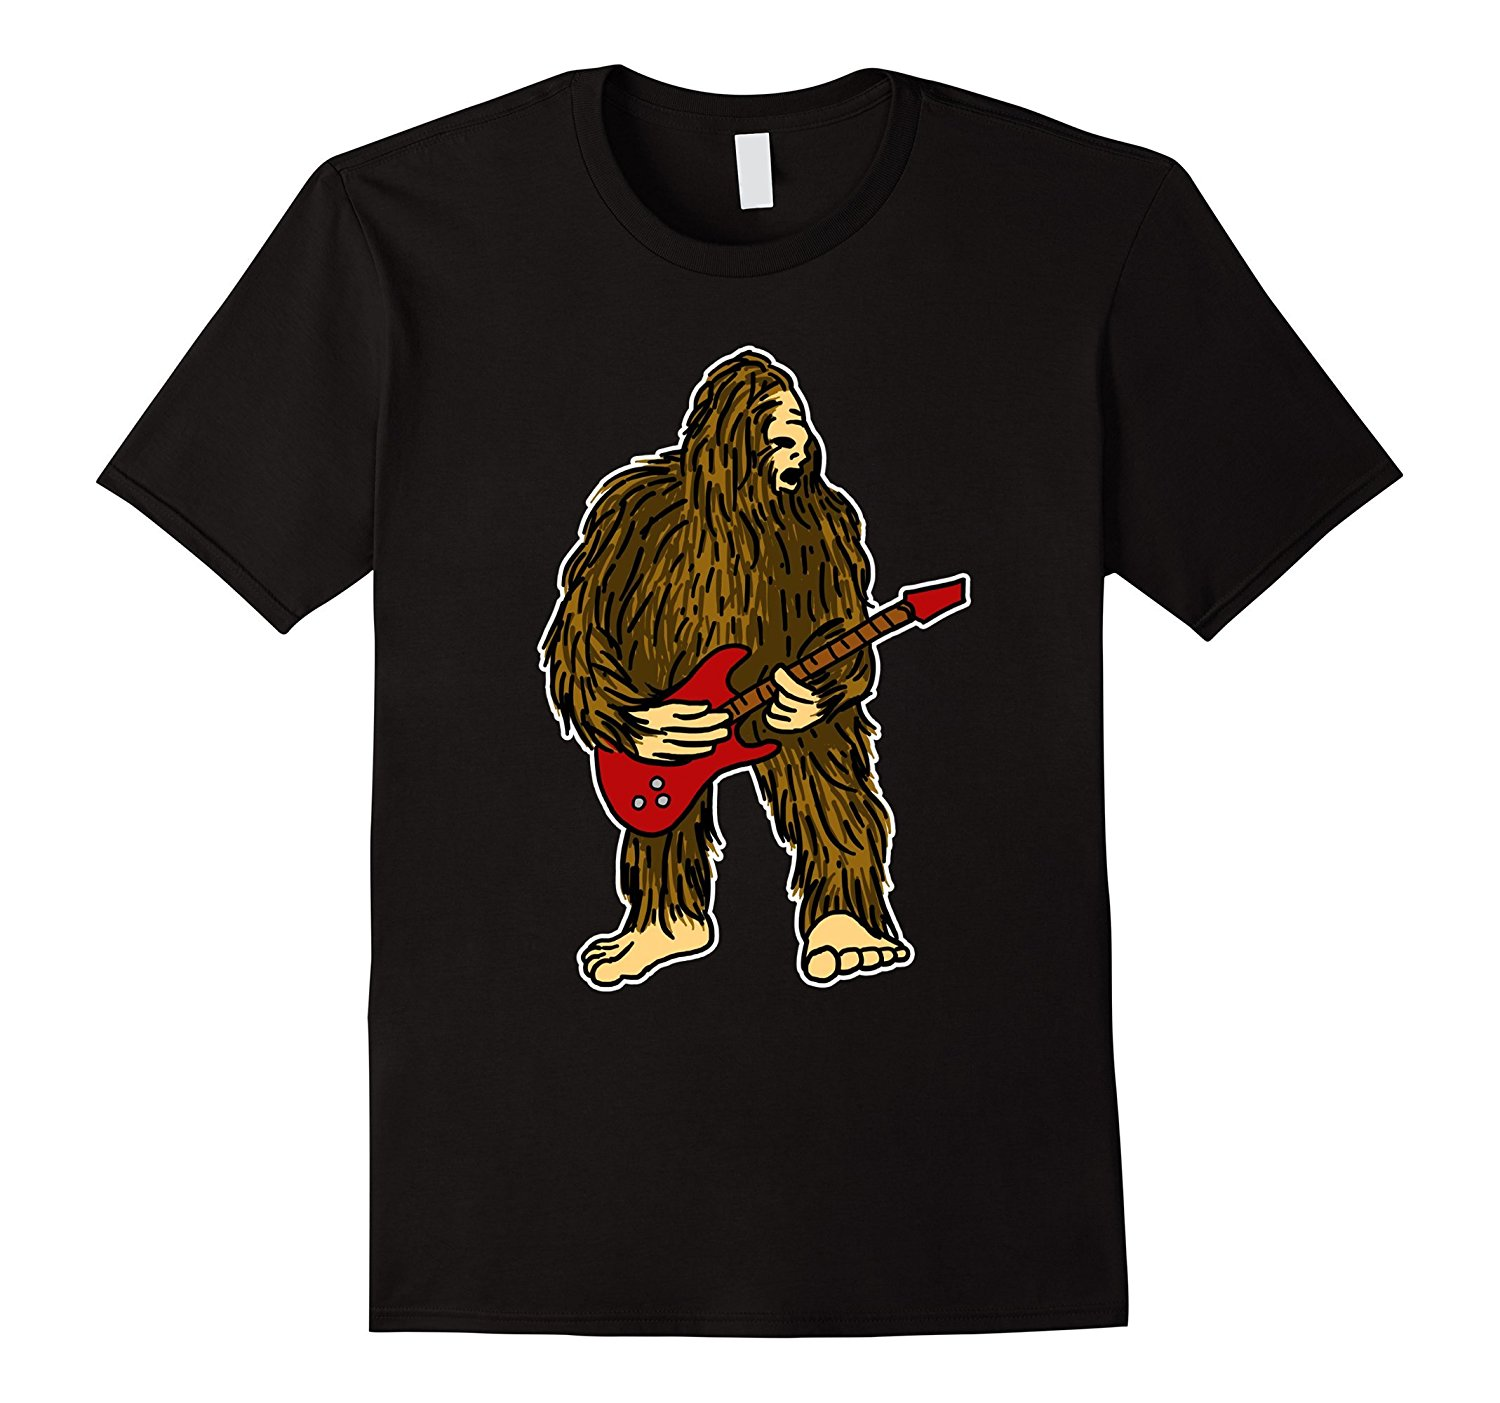 787970a7b Bigfoot Playing Guitar Funny Rock Guitarist Cartoon T Shirt-in T-Shirts  from Men's Clothing & Accessories on Aliexpress.com   Alibaba Group